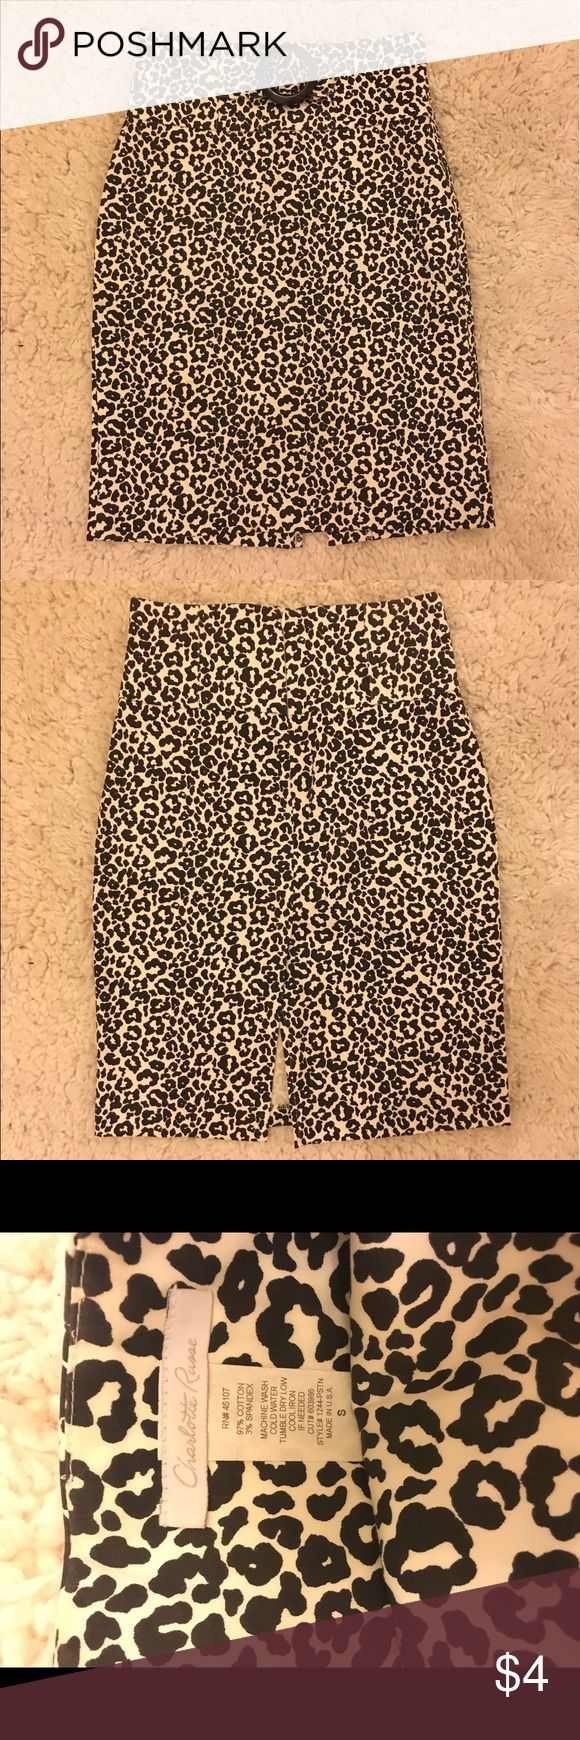 Cheetah print pencil skirt 🐆🐆🐆 Worn for first career, don't have any use since I'll be wearing scrubs to work now! Charlotte Russe Skirts Pencil